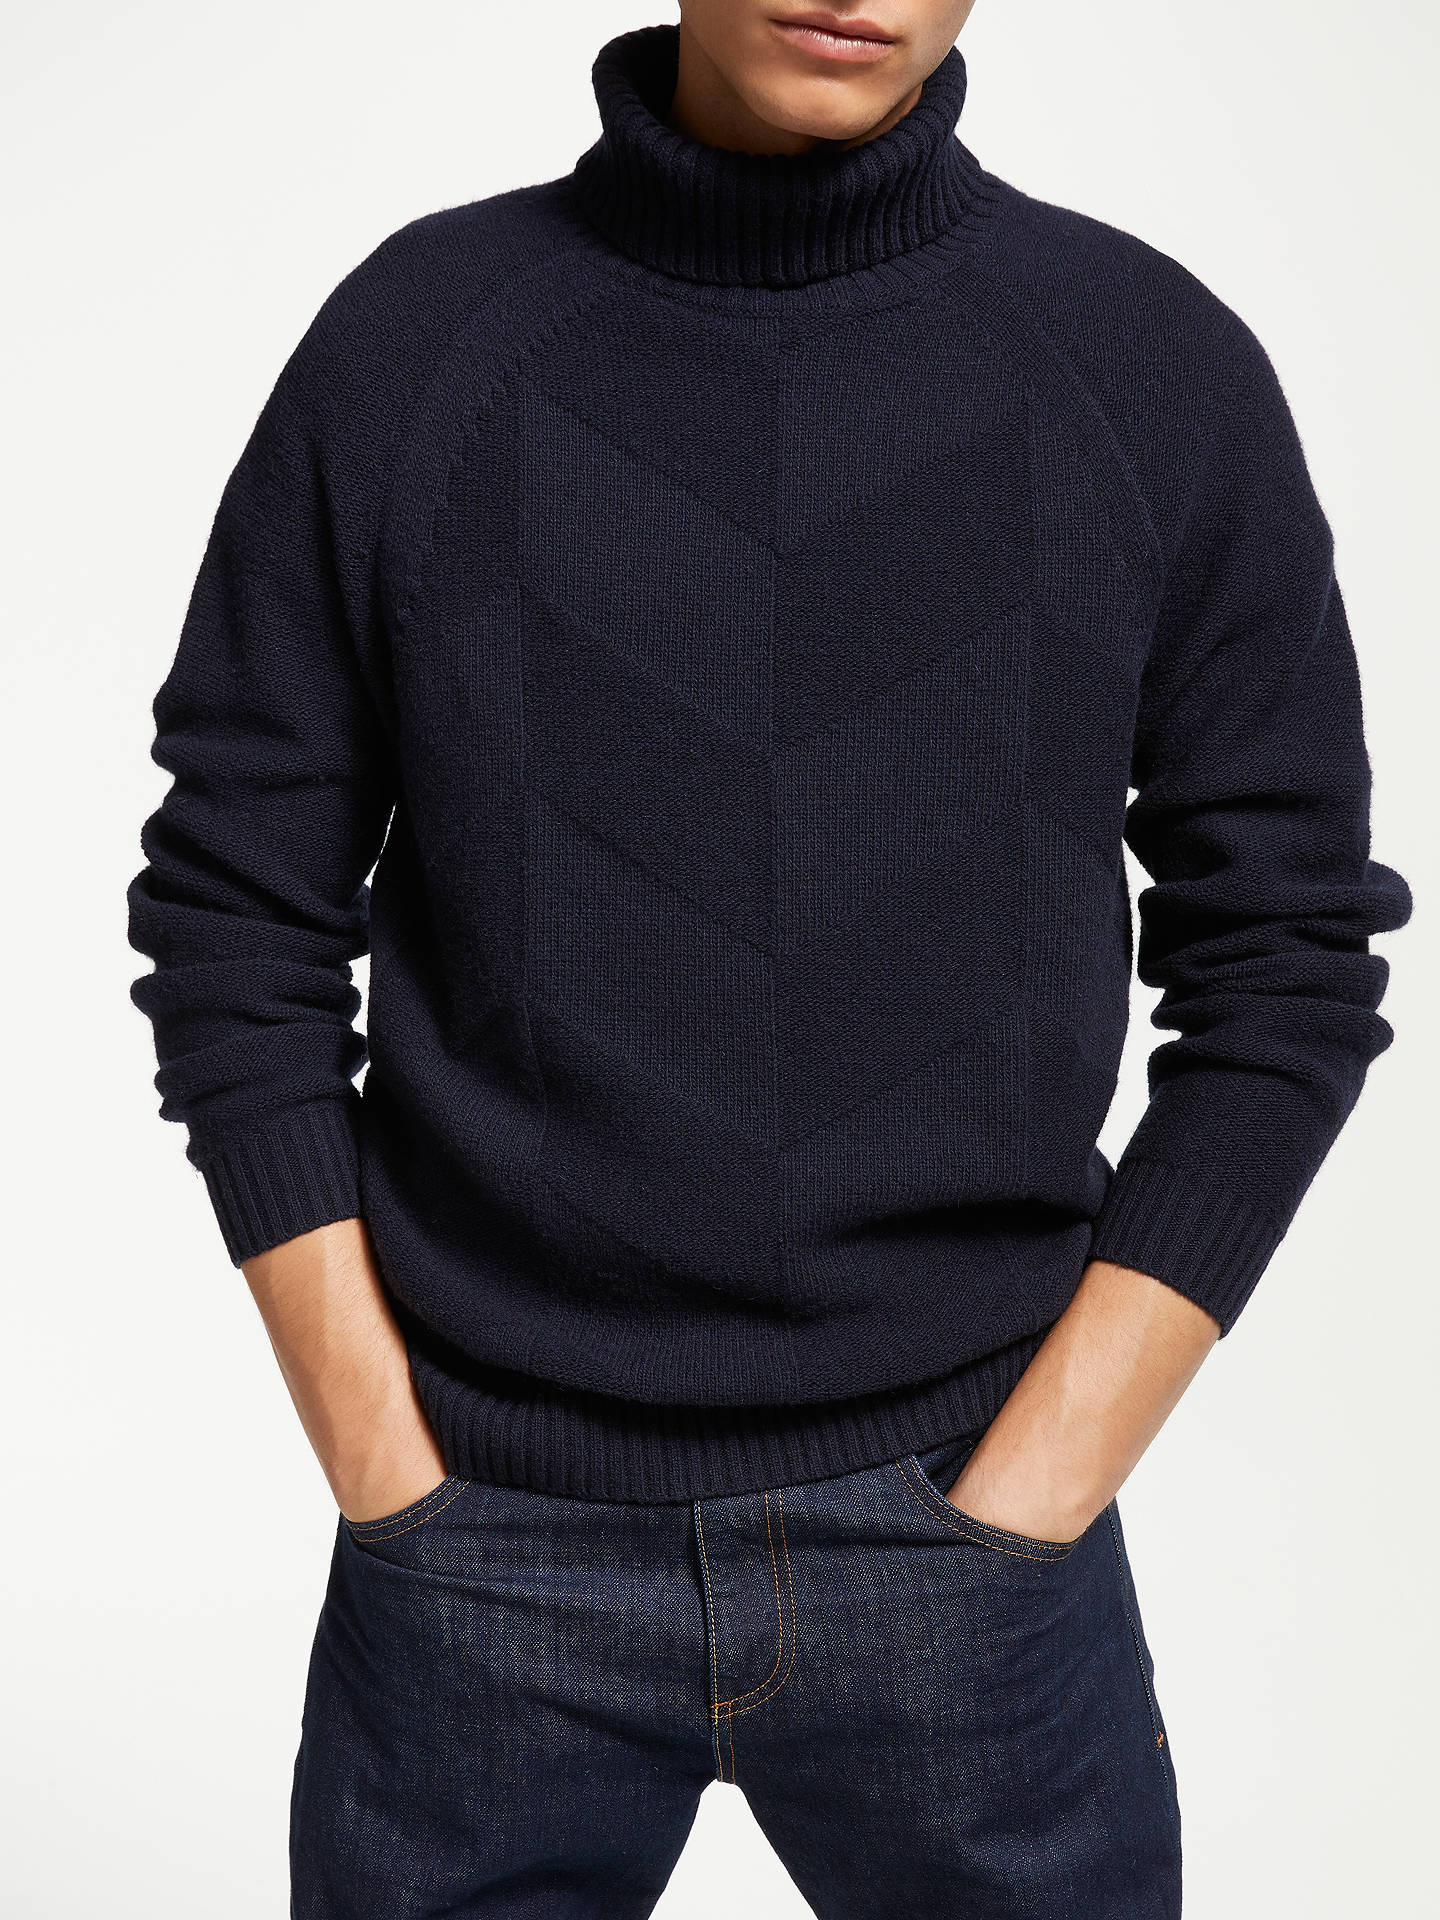 Buy John Lewis & Partners Chevron Roll Neck Jumper, Navy, M Online at johnlewis.com